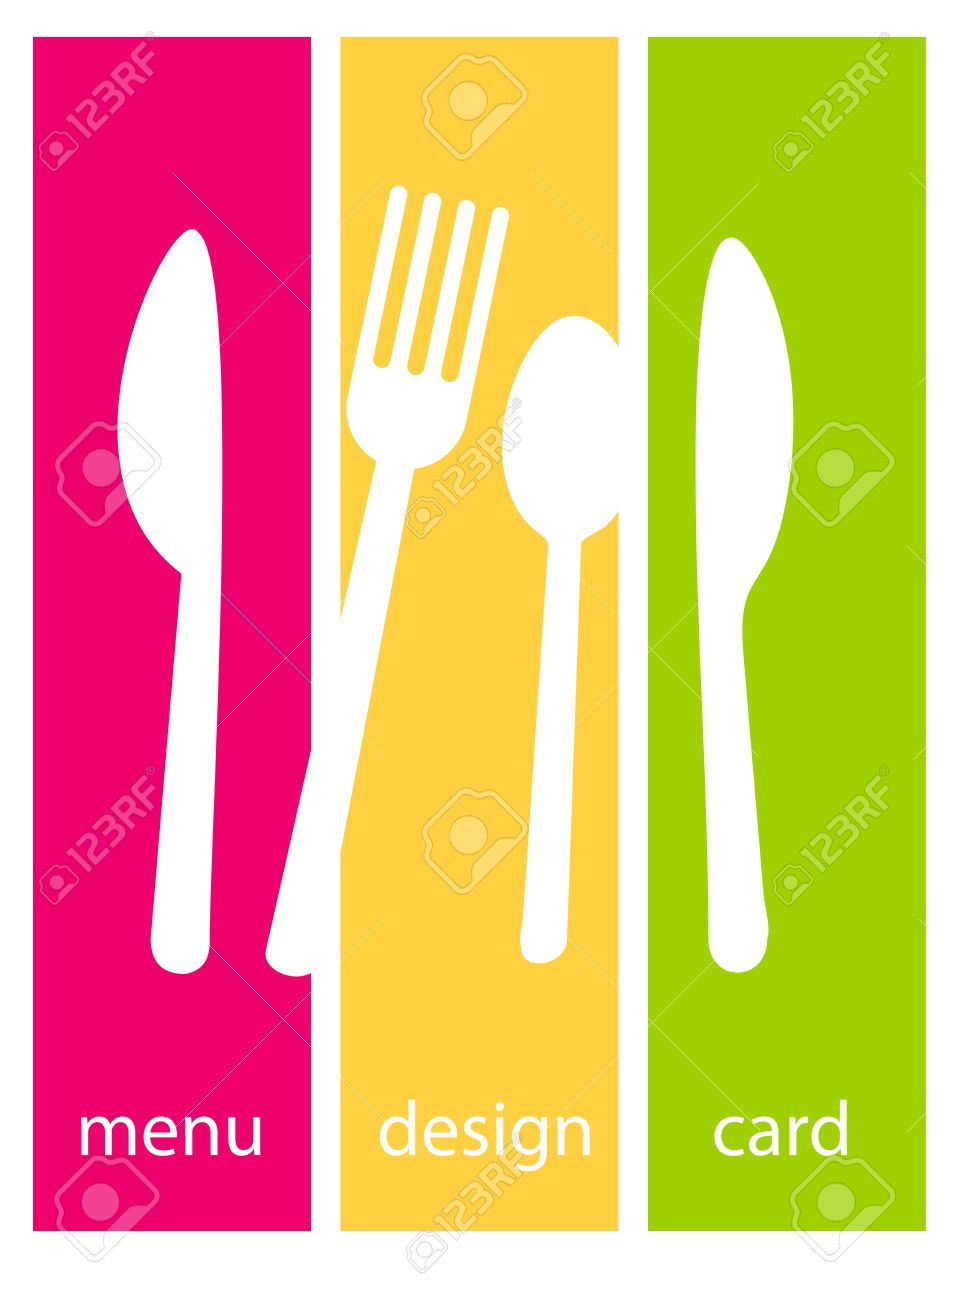 Cute design of menu template card  Fork, knife and spoon silhouettes on colourfull backgrounds Stock Vector - 15152415